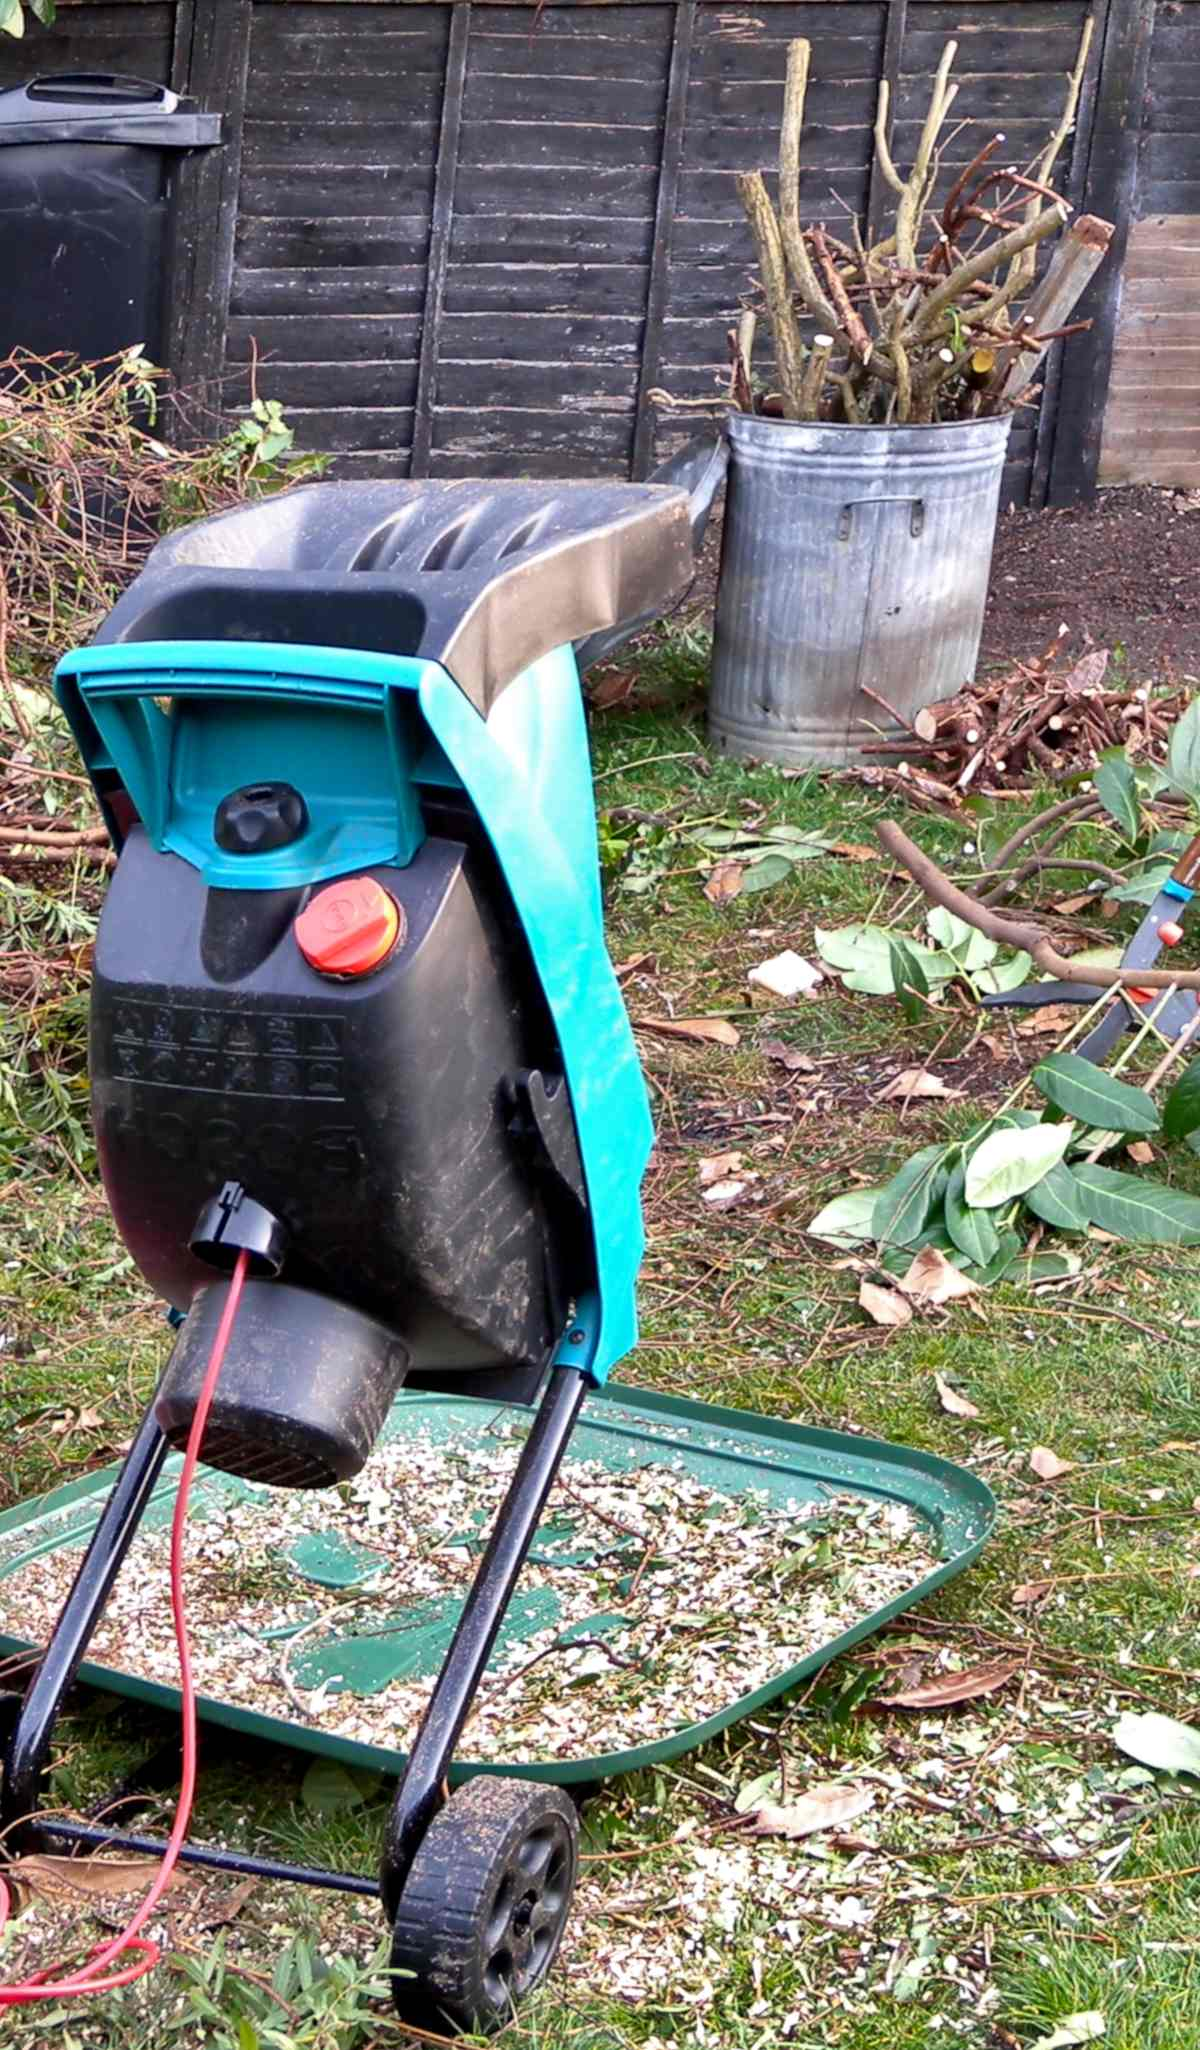 Shredder used to reduce branches